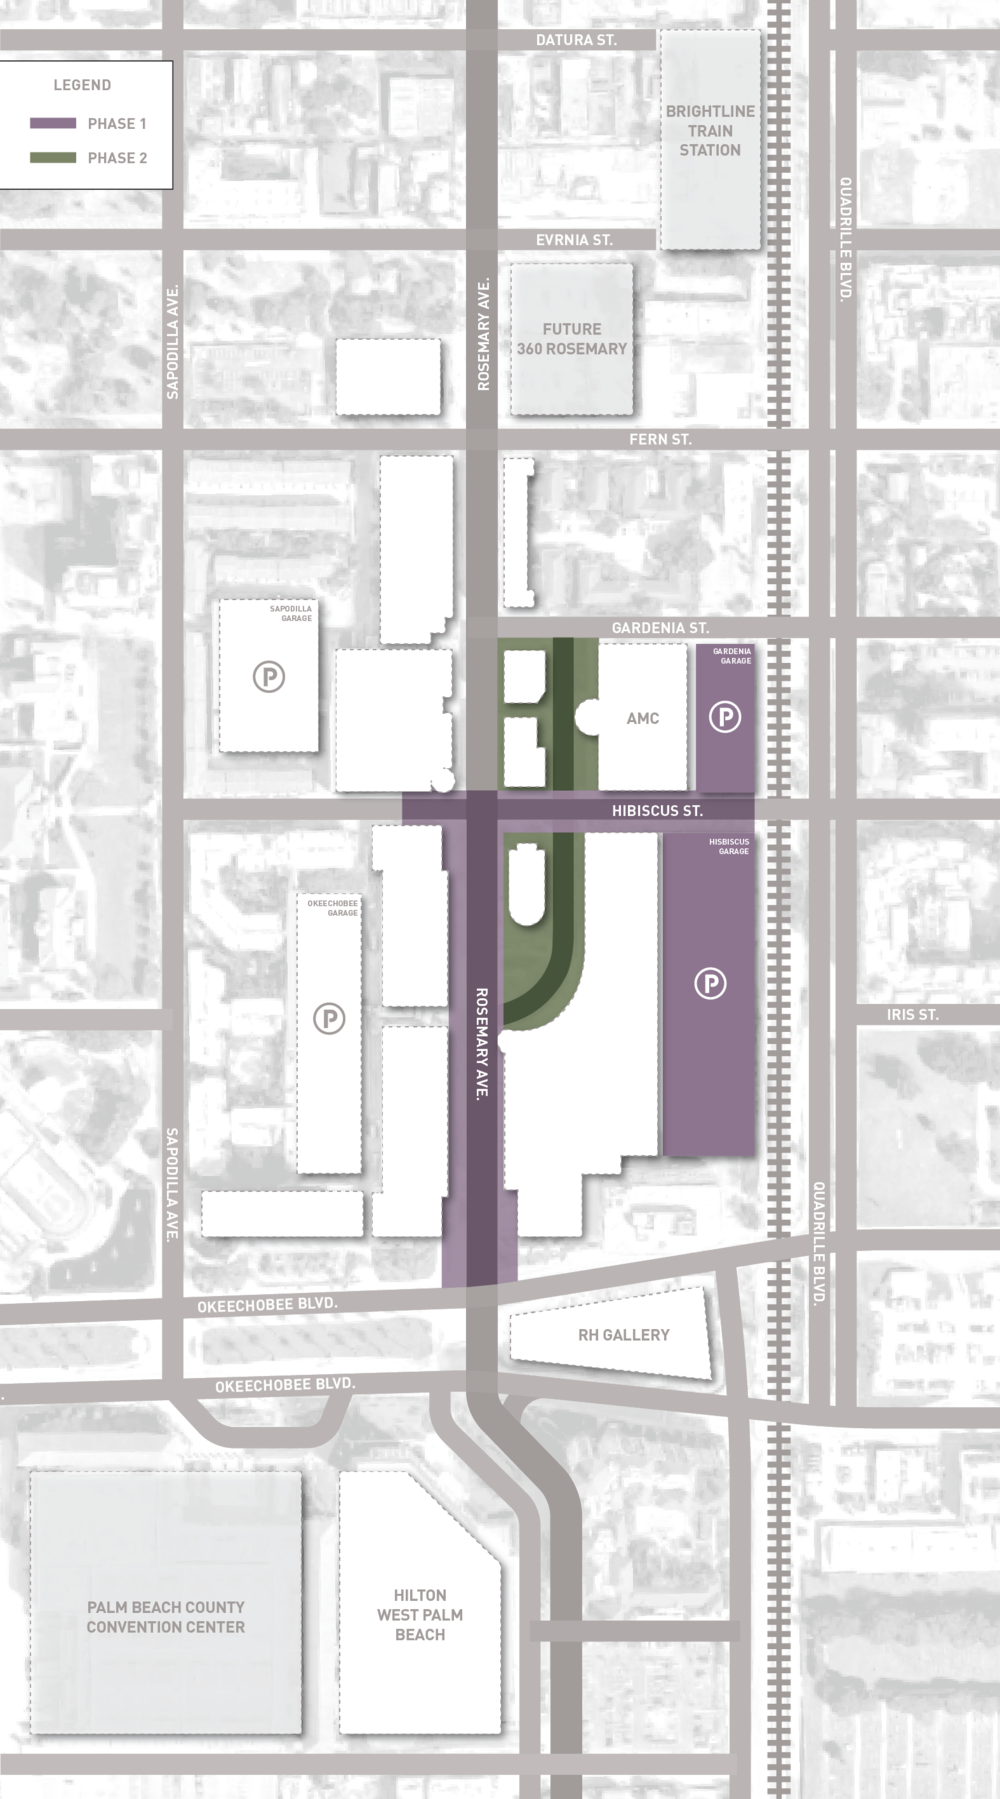 Phasing Plan - PHASE 1Under Construction as of October 29, 2018Projected Completion Spring 2019Rosemary Avenue: Relocated valet, new bike racks, new additional trolley stops, new canopies and shading, covered seating, curbless, update lighting, lush landscaping, art elements plus parking garage improvementsPHASE 2Projected Start - Summer 2019Square & Ground Level: Expanded green areas, outdoor dining venues, lighting improvements, art features Upper Entertainment Plaza: New public spaces, rejuvenated outdoor dining area, AMC Theater renovation including recliner seats